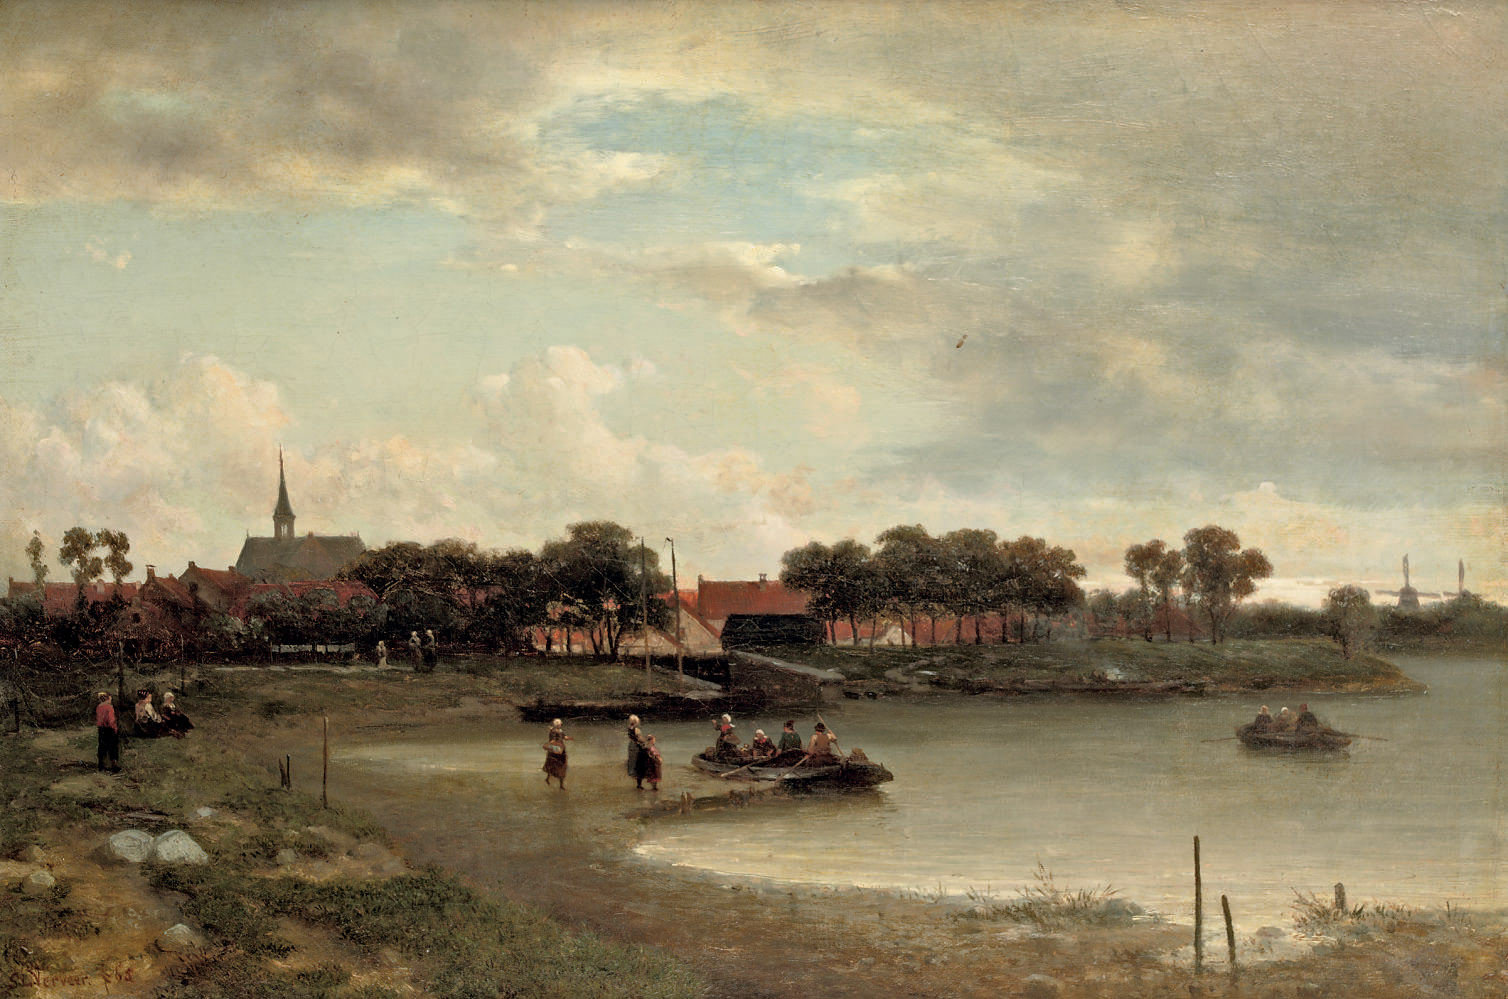 A ferry crossing near a Dutch town